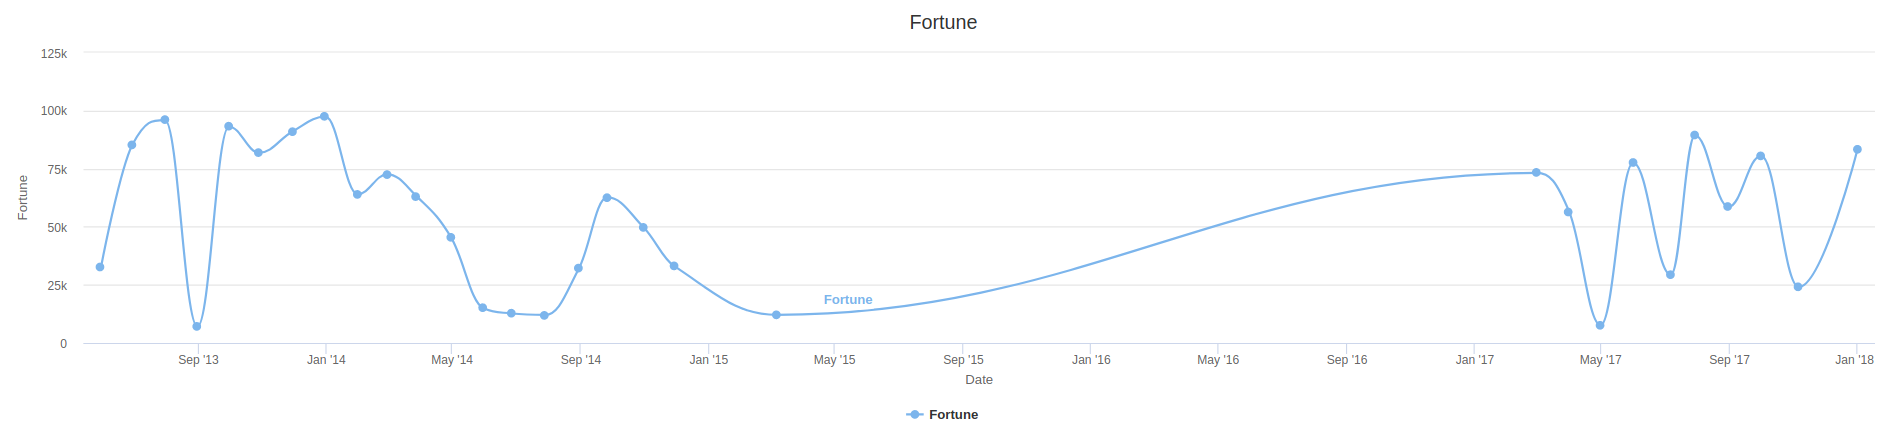 Web interface fortune graph